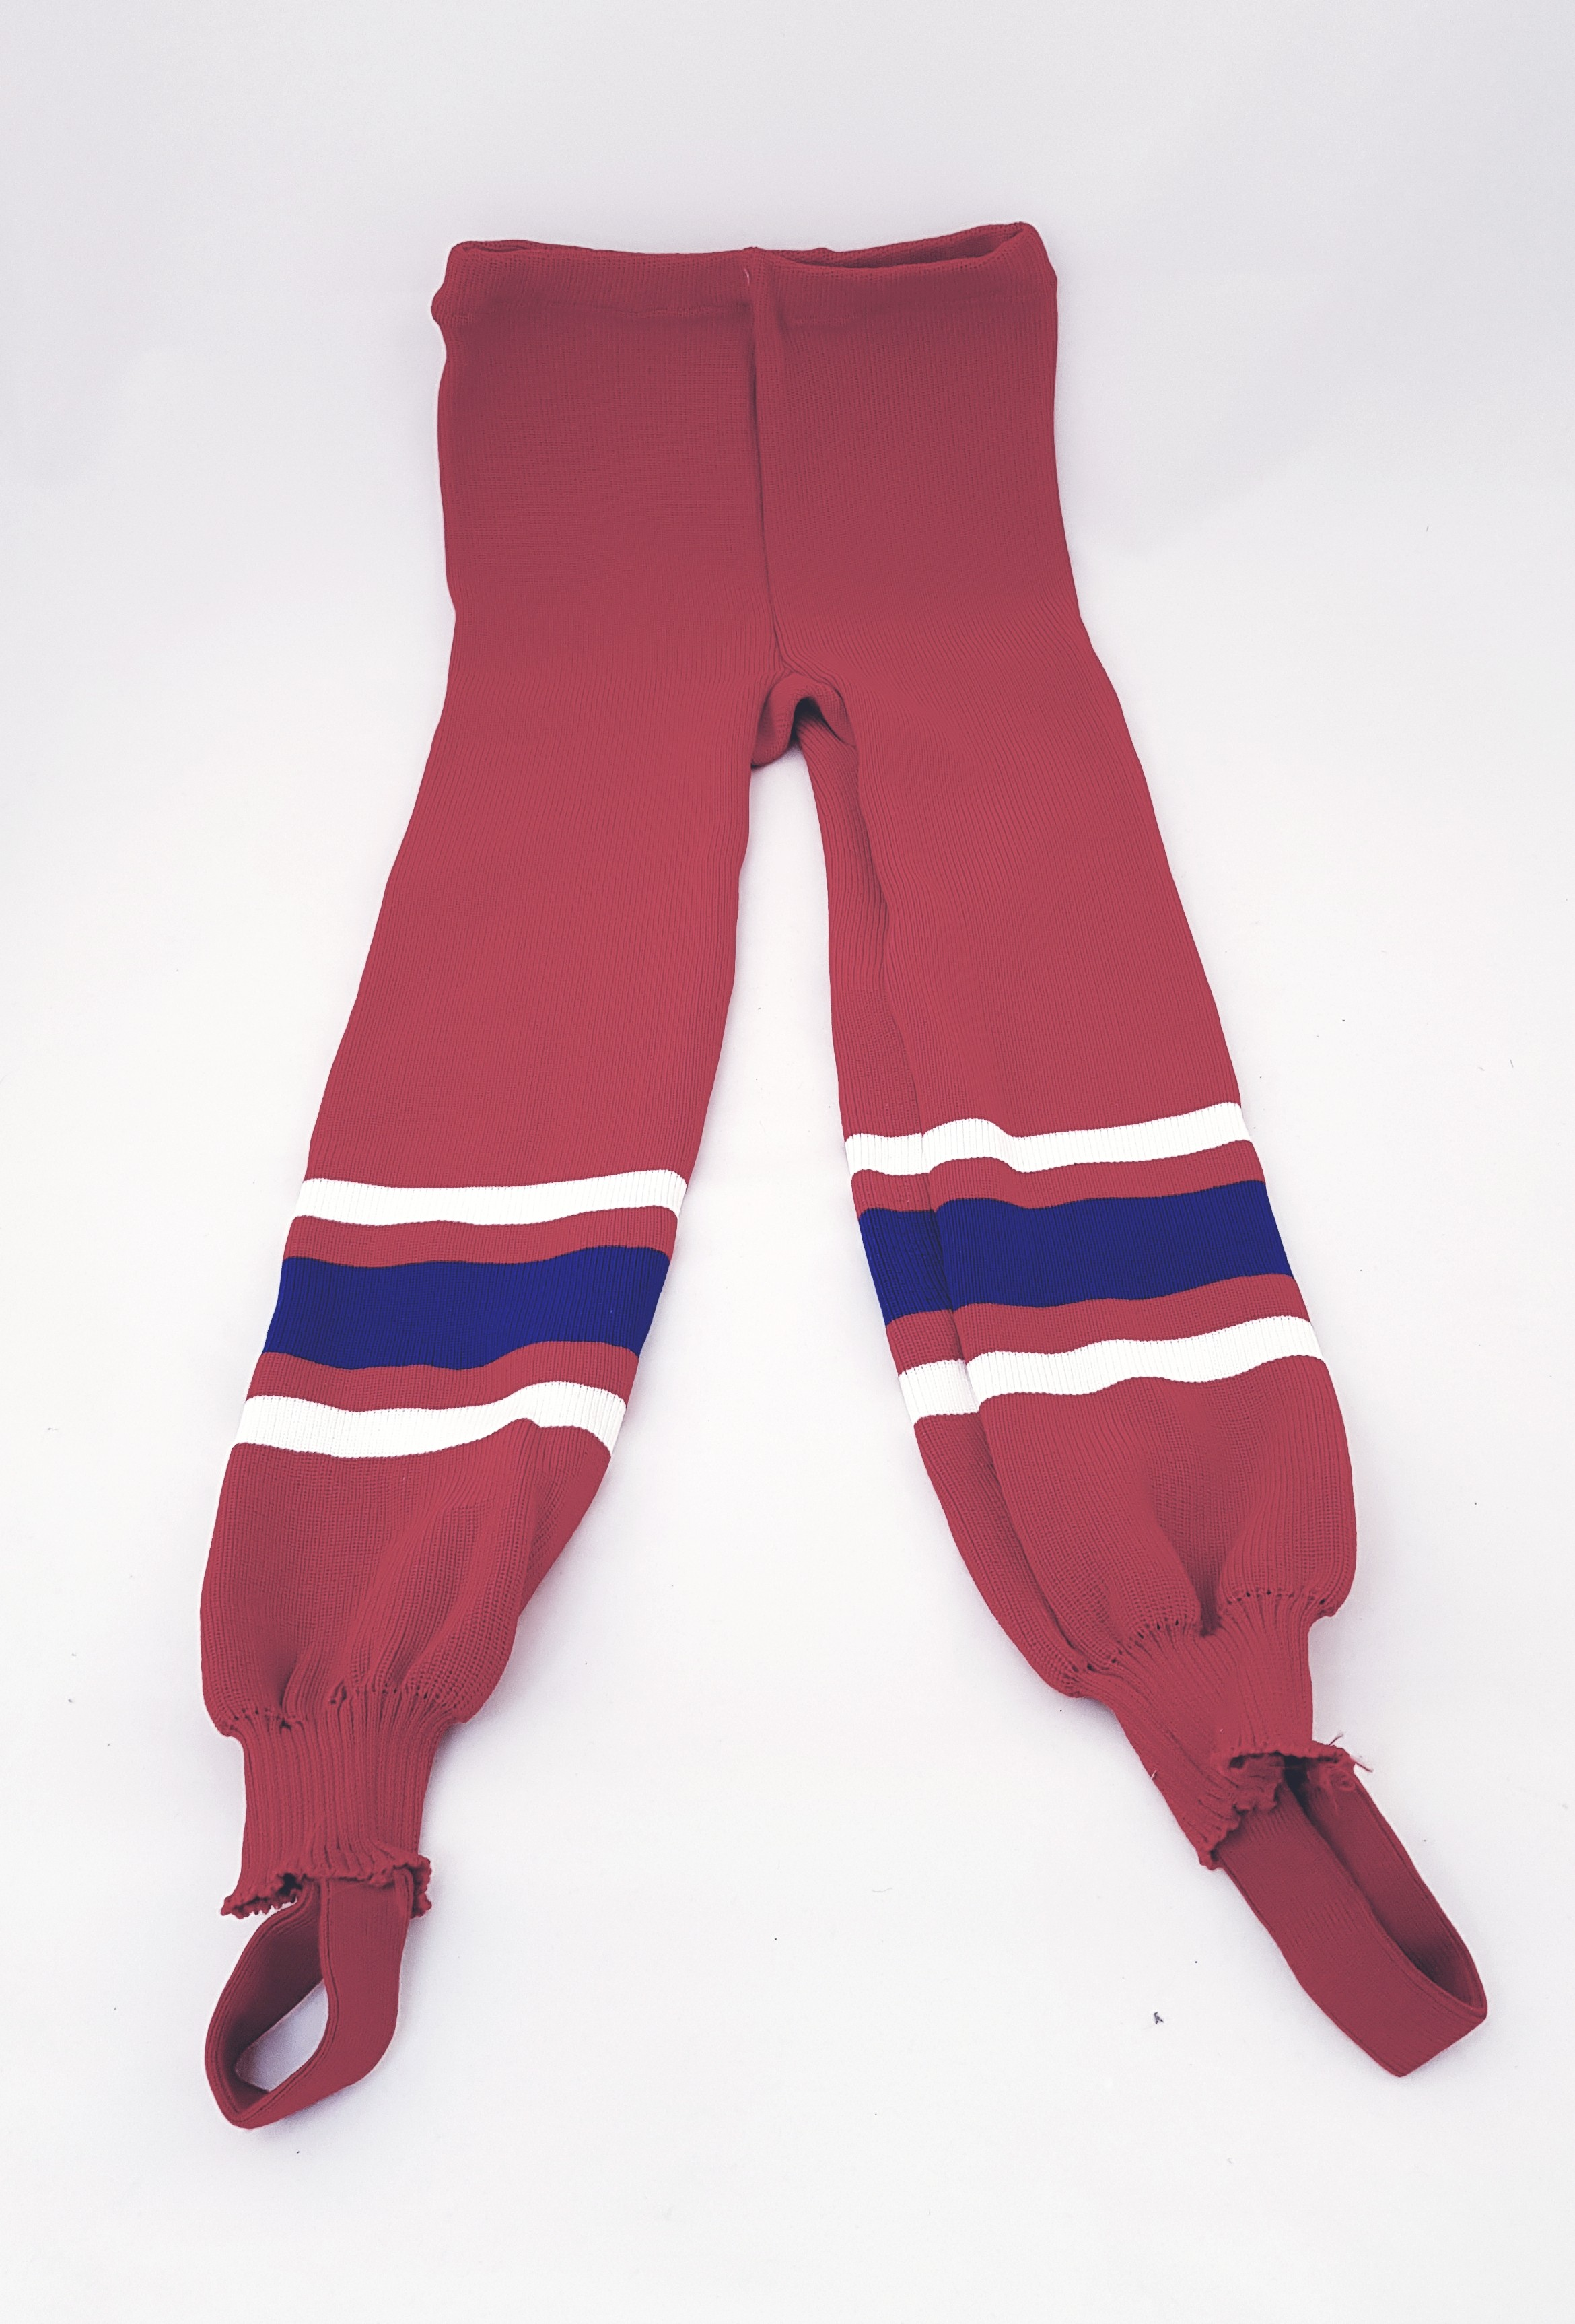 HOKEJAM.LV Knit Intermediate Hockey Sock Pants#002